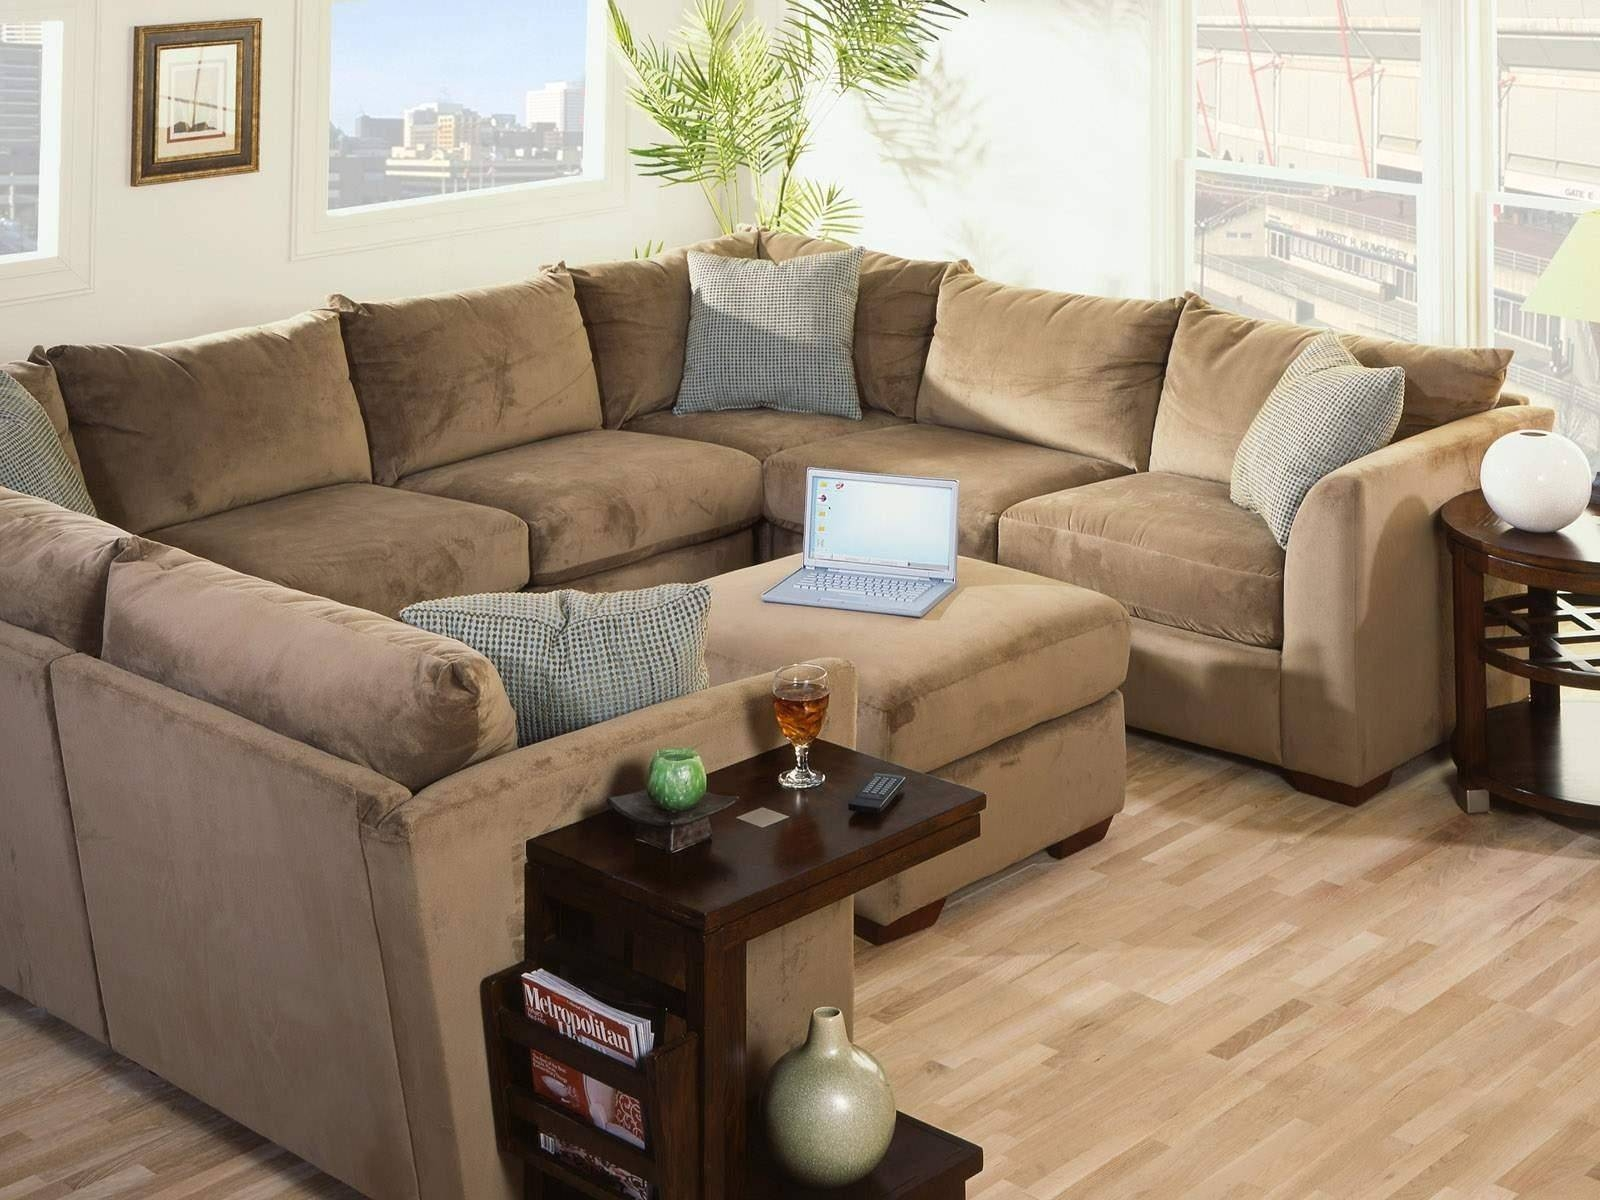 20 Ideas Of Big Lots Sofa Tables | Sofa Ideas in Big Lots Sofa Tables (Image 2 of 15)